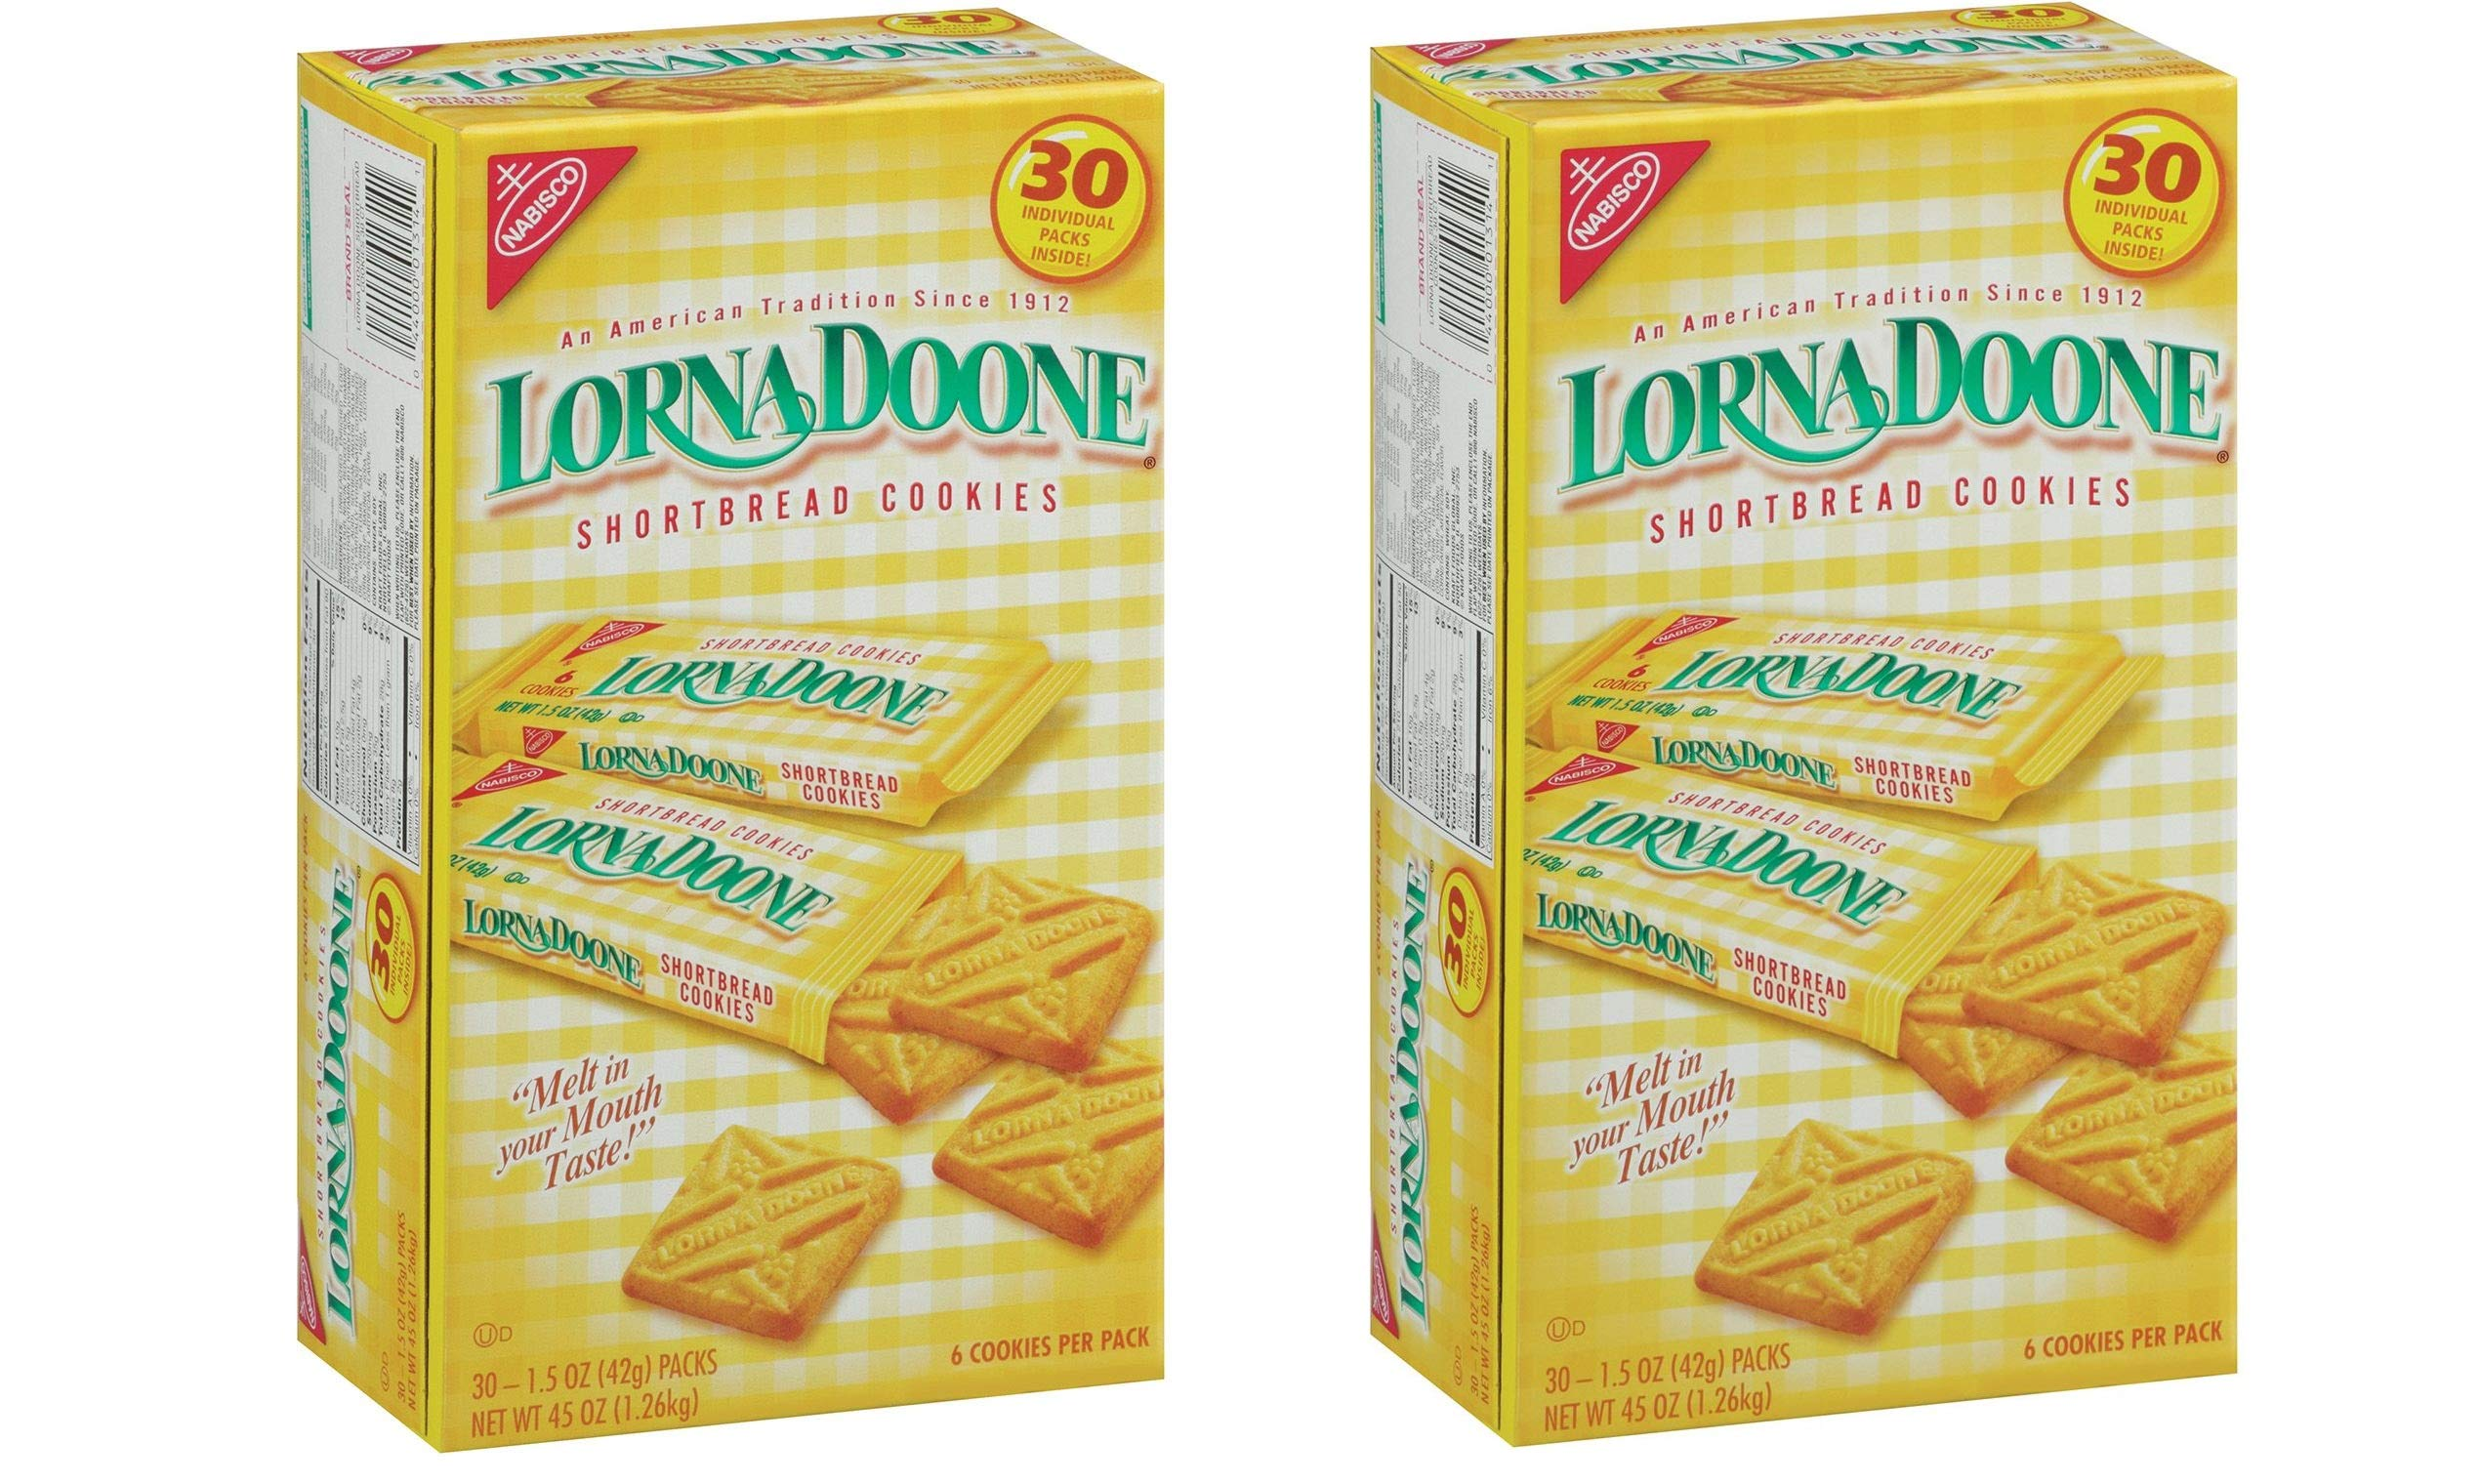 Lorna Doone-Shortbread Cookies, 1.50z Pack, 60Ct by Lorna Doone